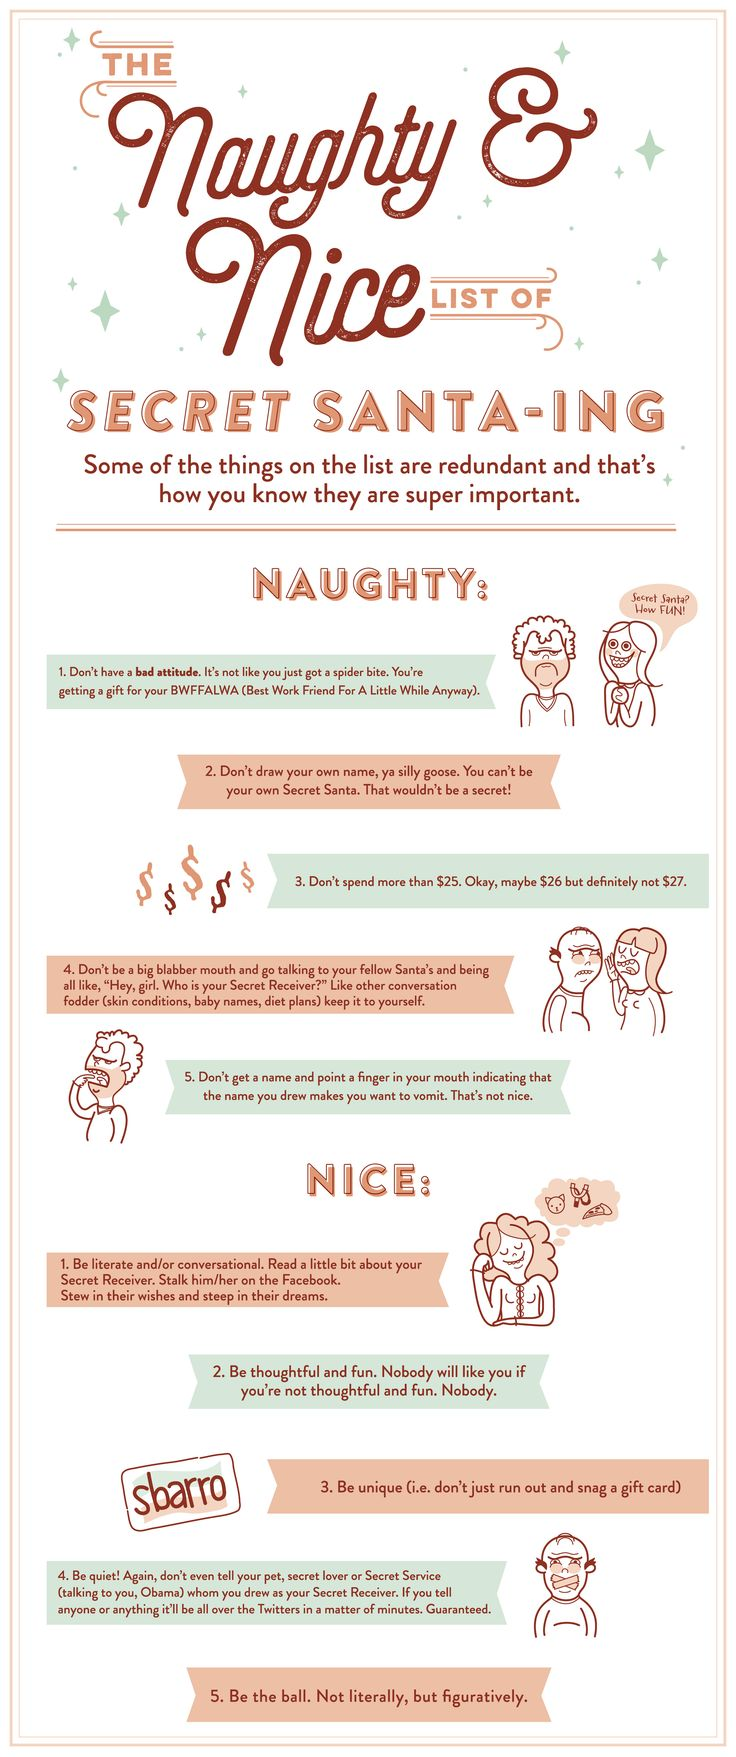 The Naughty and Nice List of Secret Santa-ing. Rules by Eric Forseth & ilustrations by Johna Reuvers